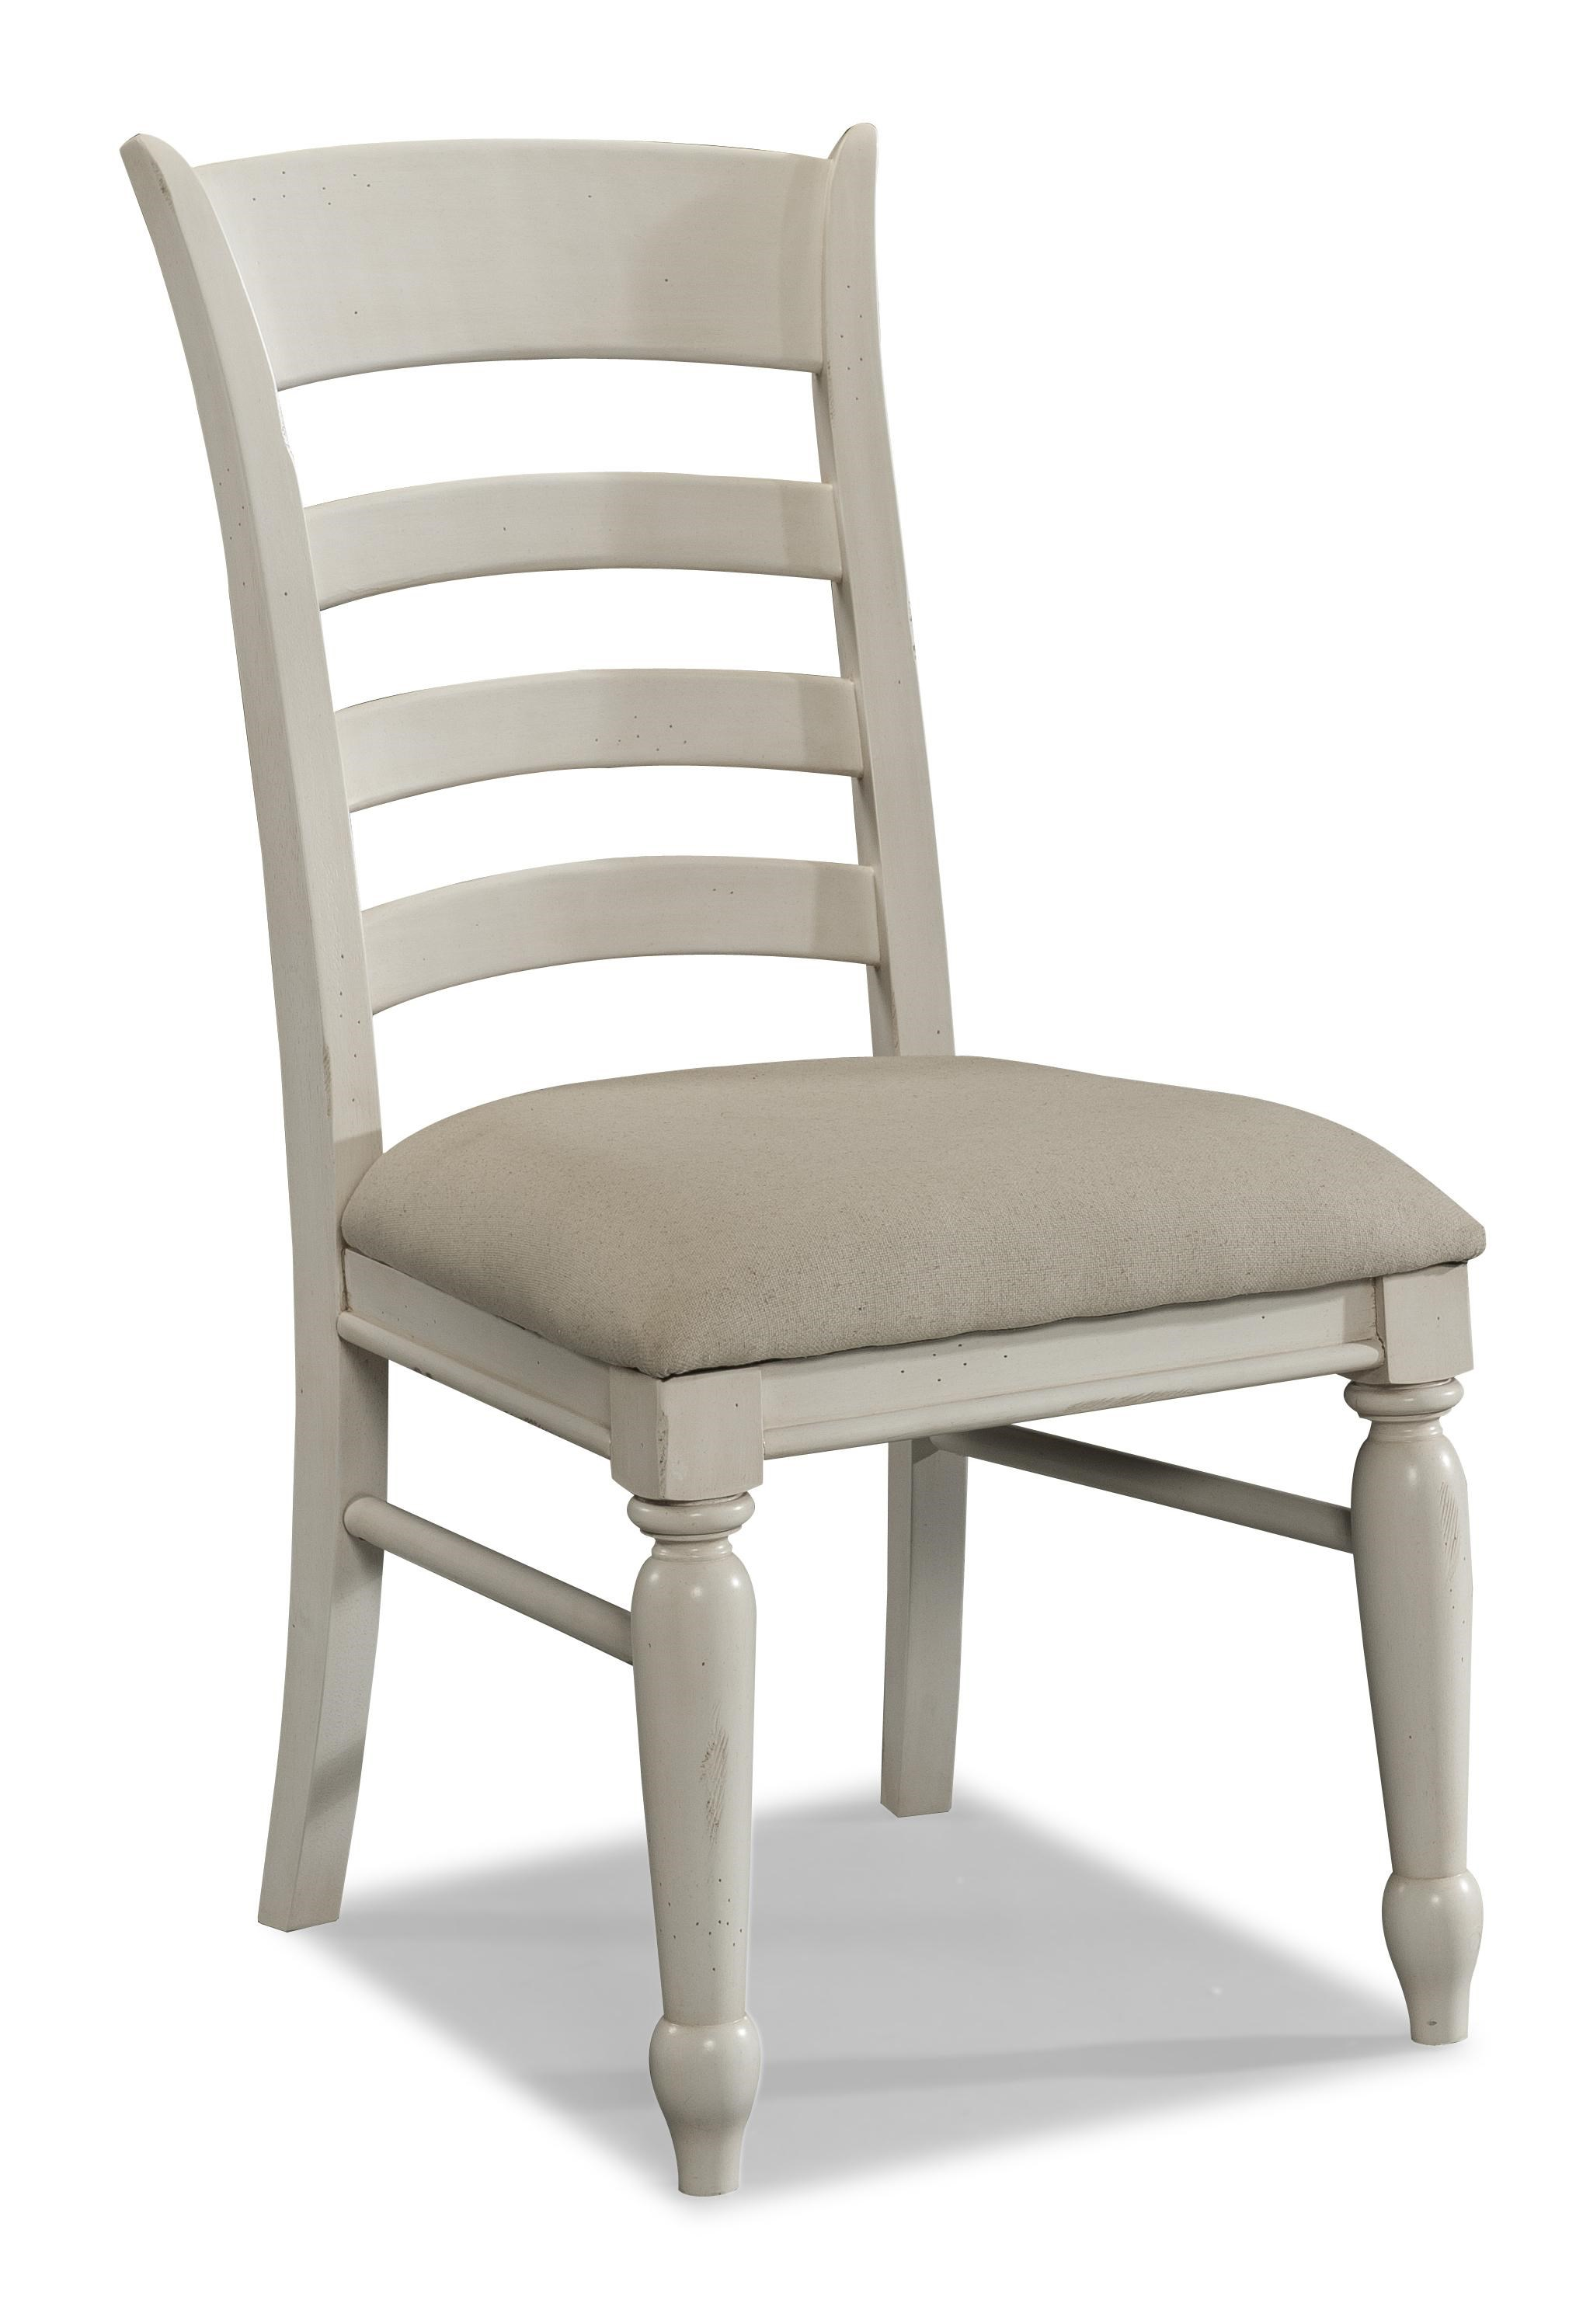 Carolina Preserves By Klaussner Sea BreezeWhite Ladder Back Side Chair ...